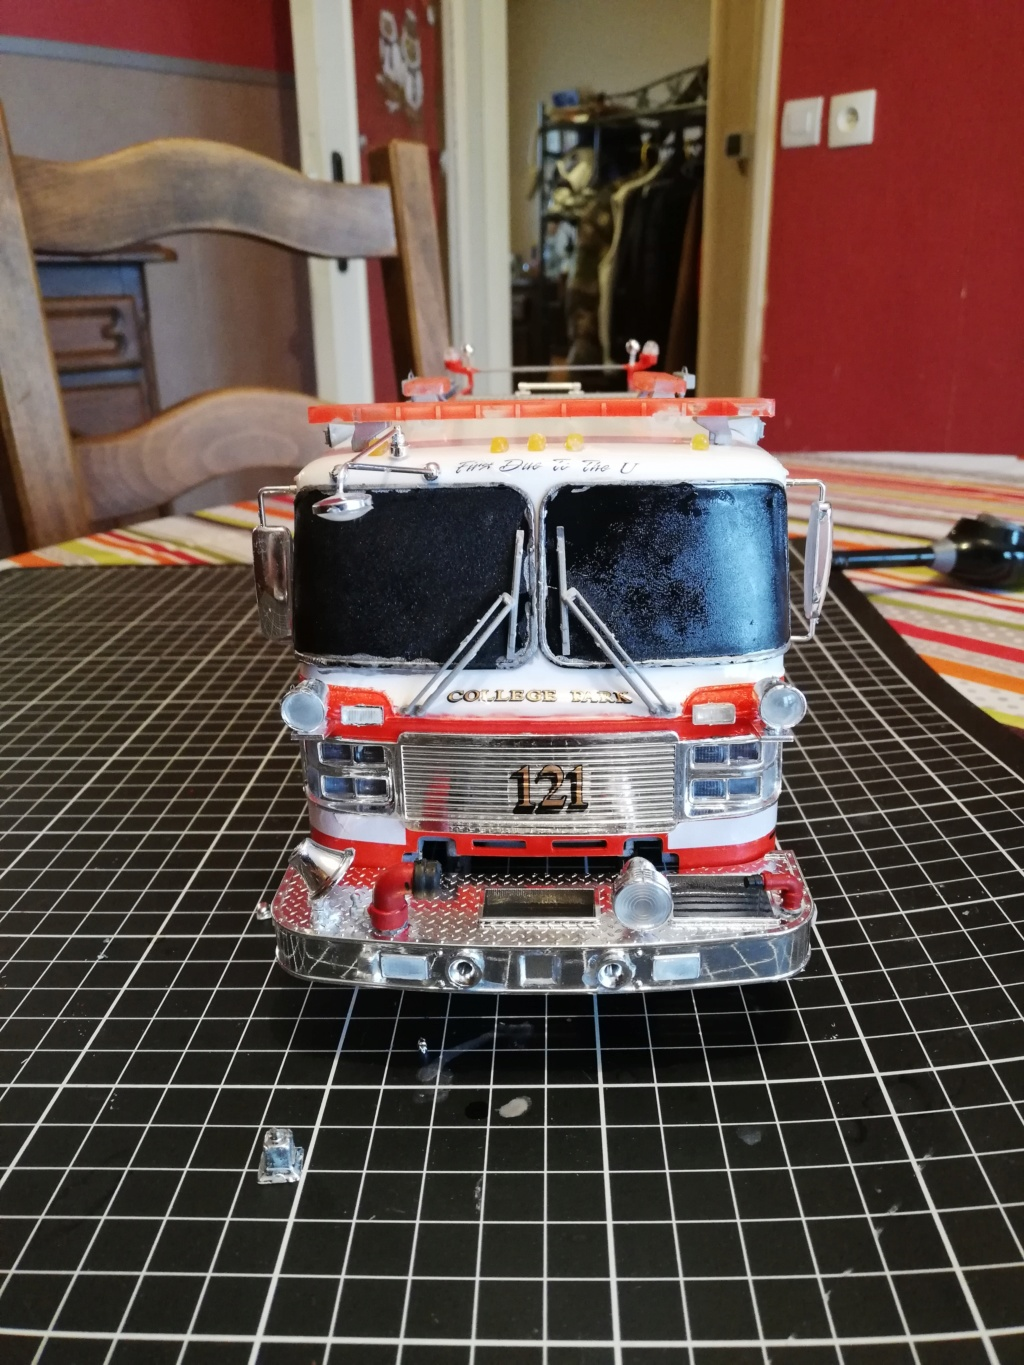 American Lafrance Eagle fire pumper [Trumpeter 1/25] - Page 3 Img_2038